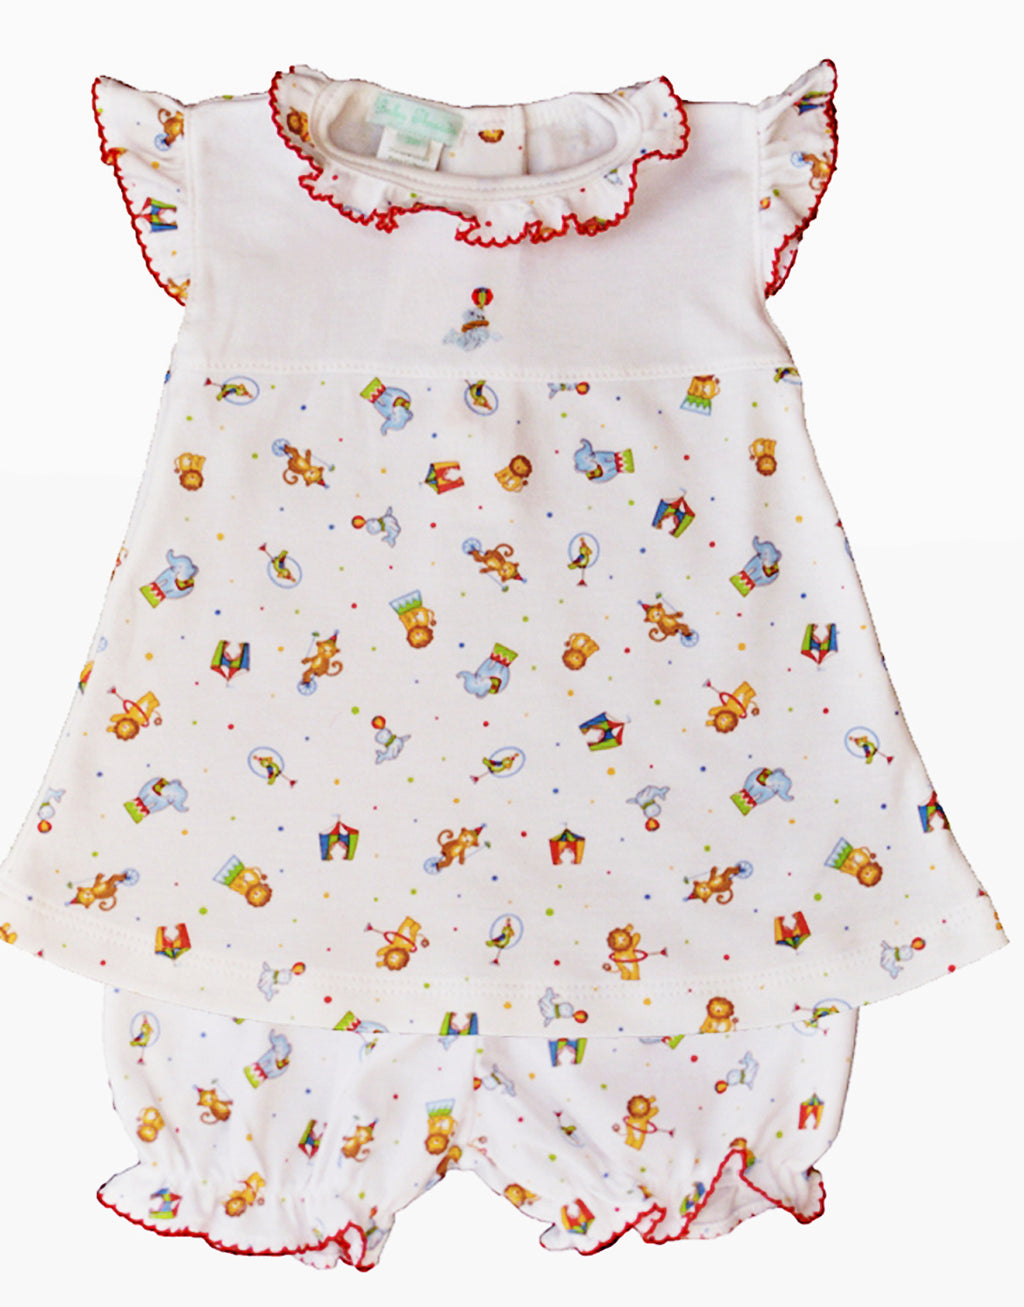 Baby Girl's Circus Print Dress - Little Threads Inc. Children's Clothing